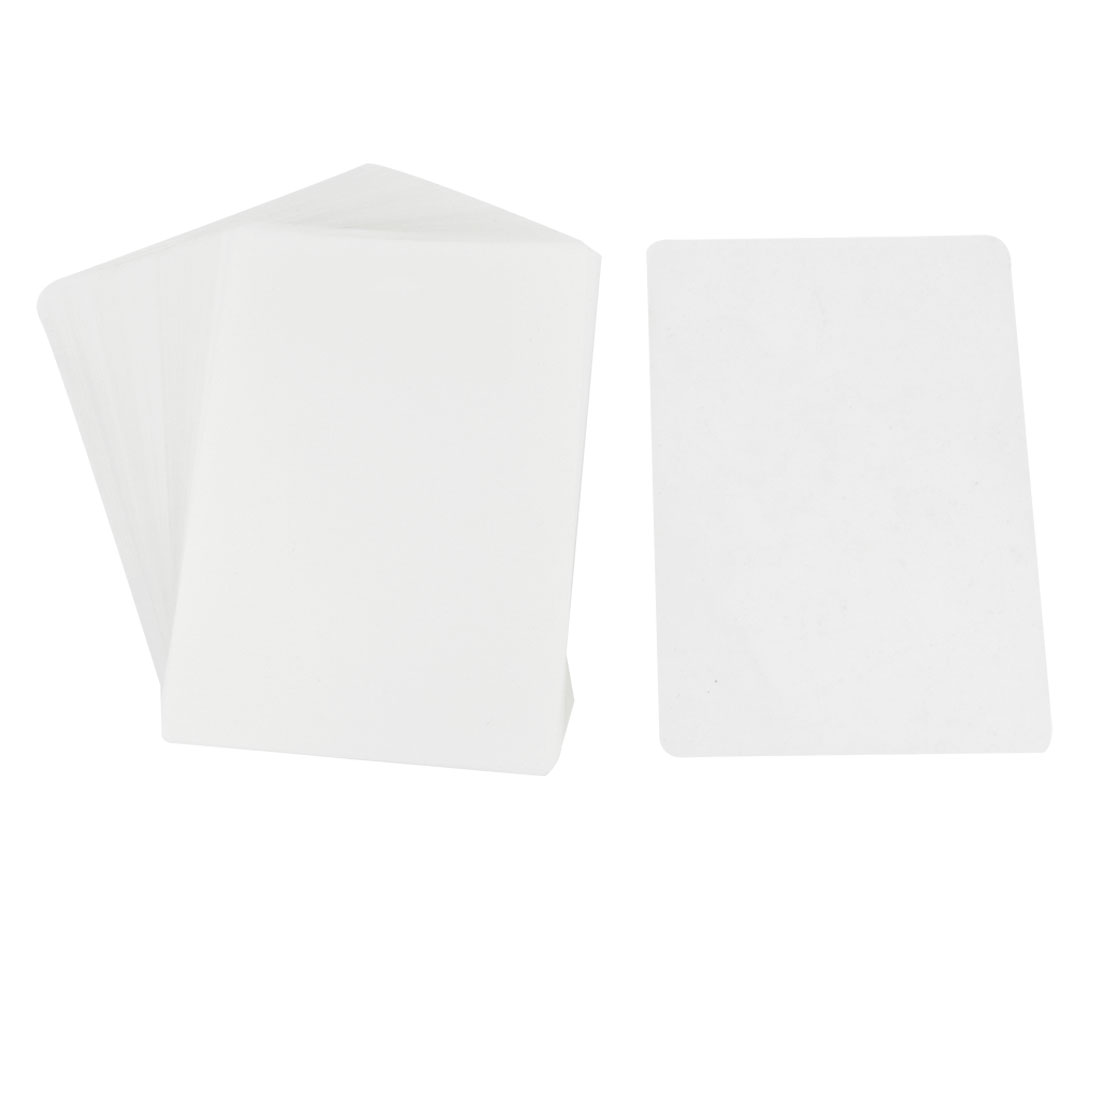 100pcs Clear White Plastic 55mic 4R Protective Photo Laminating Pouch Film